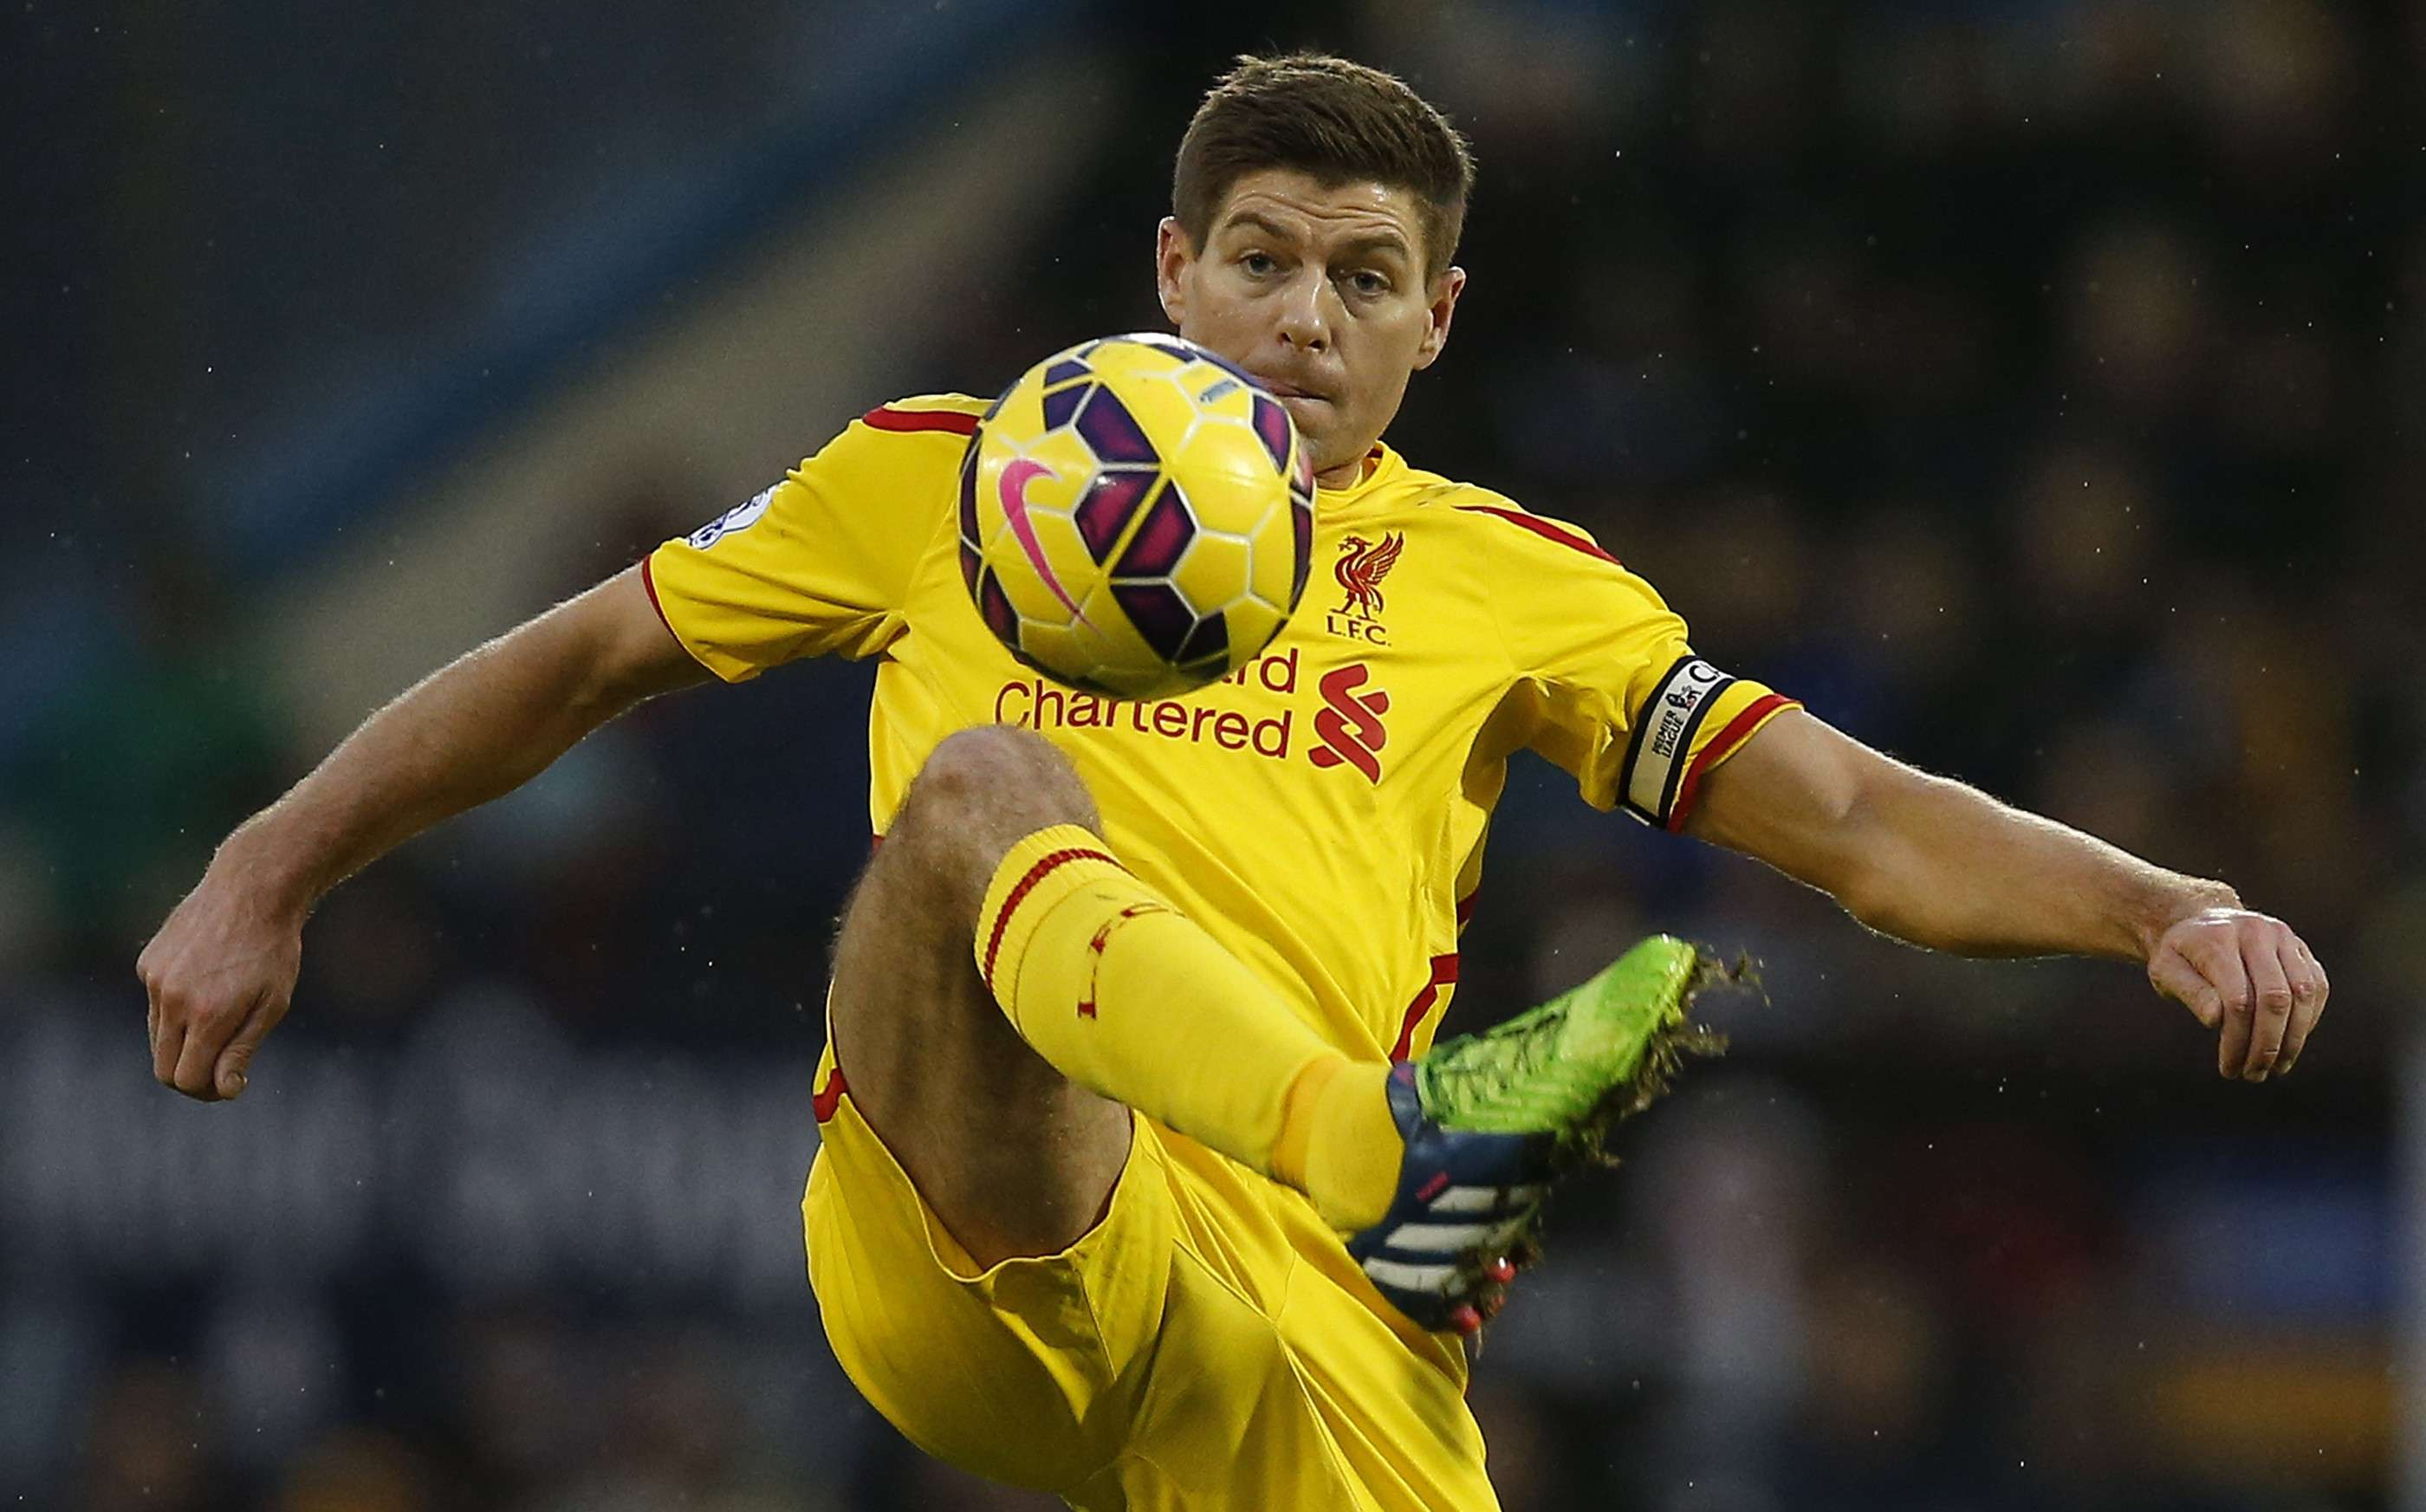 """Liverpool's Steven Gerrard controls the ball during their English Premier League soccer match against Burnley at Turf Moor in Burnley, northern England December 26, 2014. REUTERS/Andrew Yates (BRITAIN - Tags: SPORT SOCCER) NO USE WITH UNAUTHORIZED AUDIO, VIDEO, DATA, FIXTURE LISTS, CLUB/LEAGUE LOGOS OR """"LIVE"""" SERVICES. ONLINE IN-MATCH USE LIMITED TO 45 IMAGES, NO VIDEO EMULATION. NO USE IN BETTING, GAMES OR SINGLE CLUB/LEAGUE/PLAYER PUBLICATIONS. FOR EDITORIAL USE ONLY. NOT FOR SALE FOR MARKETING OR ADVERTISING CAMPAIGNS Foto: ANDREW YATES/REUTERS"""